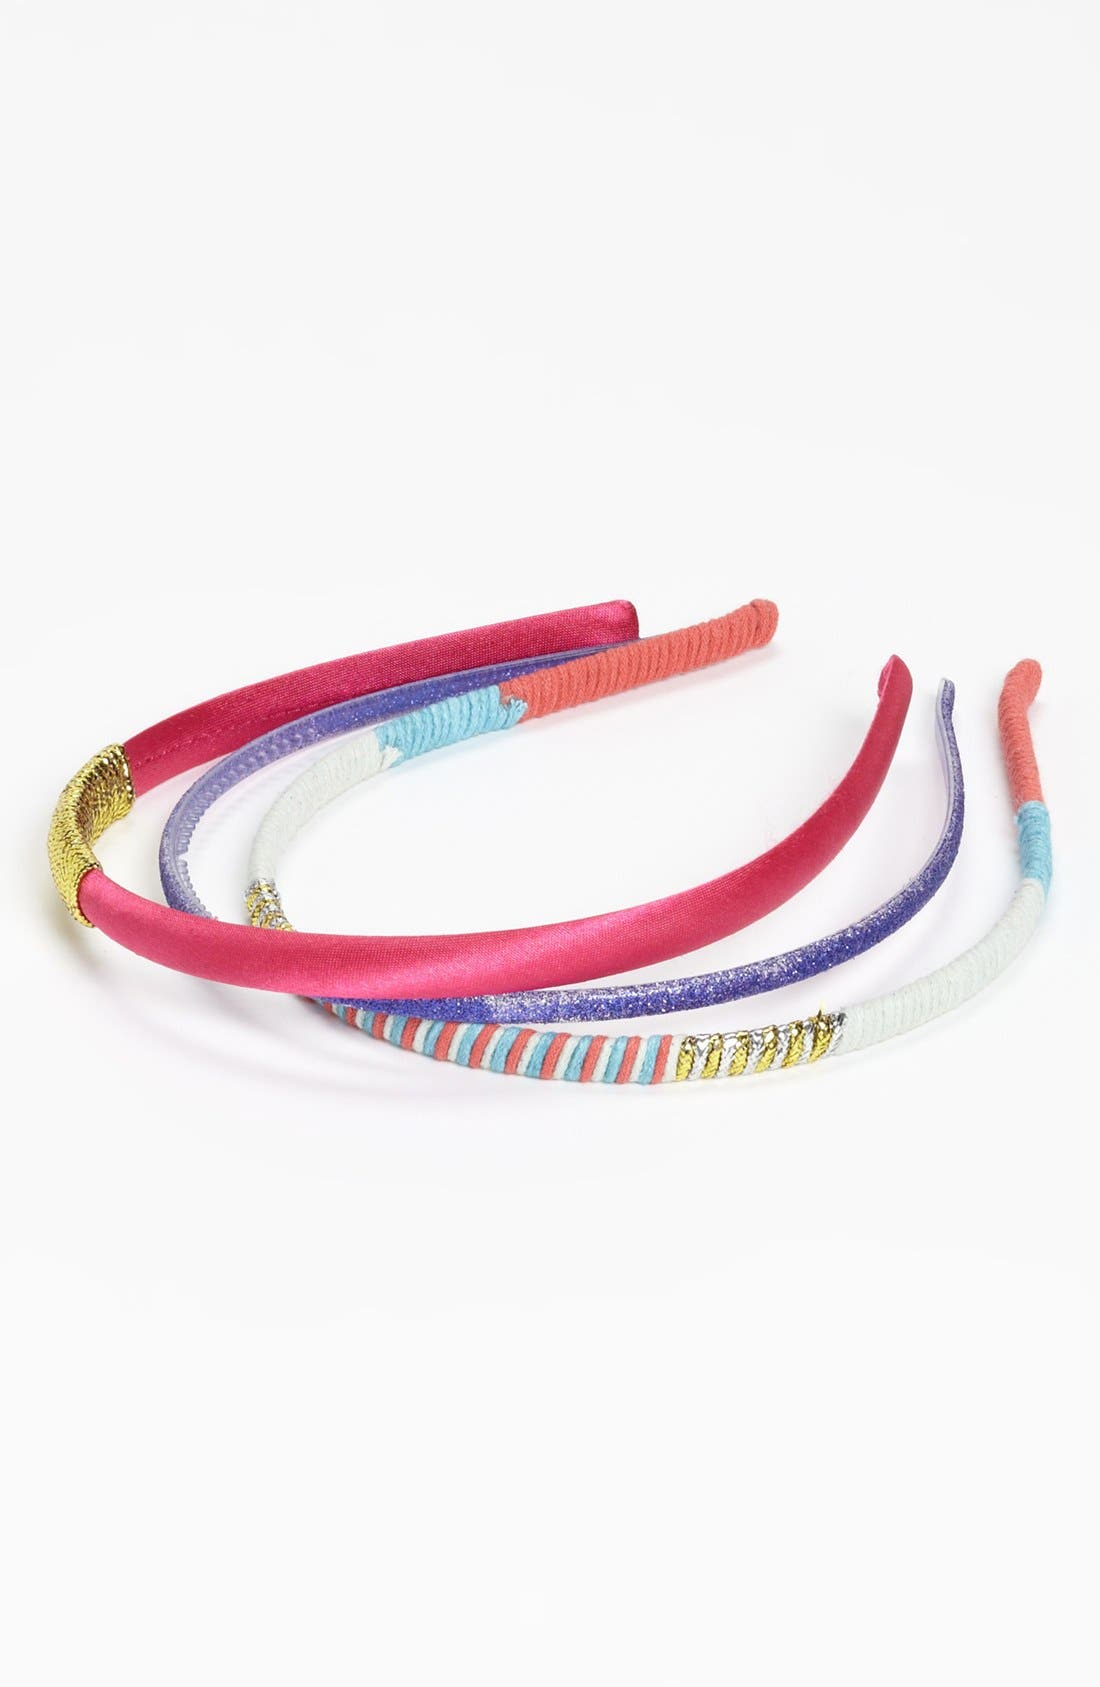 Alternate Image 1 Selected - Capelli of New York Headbands (Set of 3) (Girls)